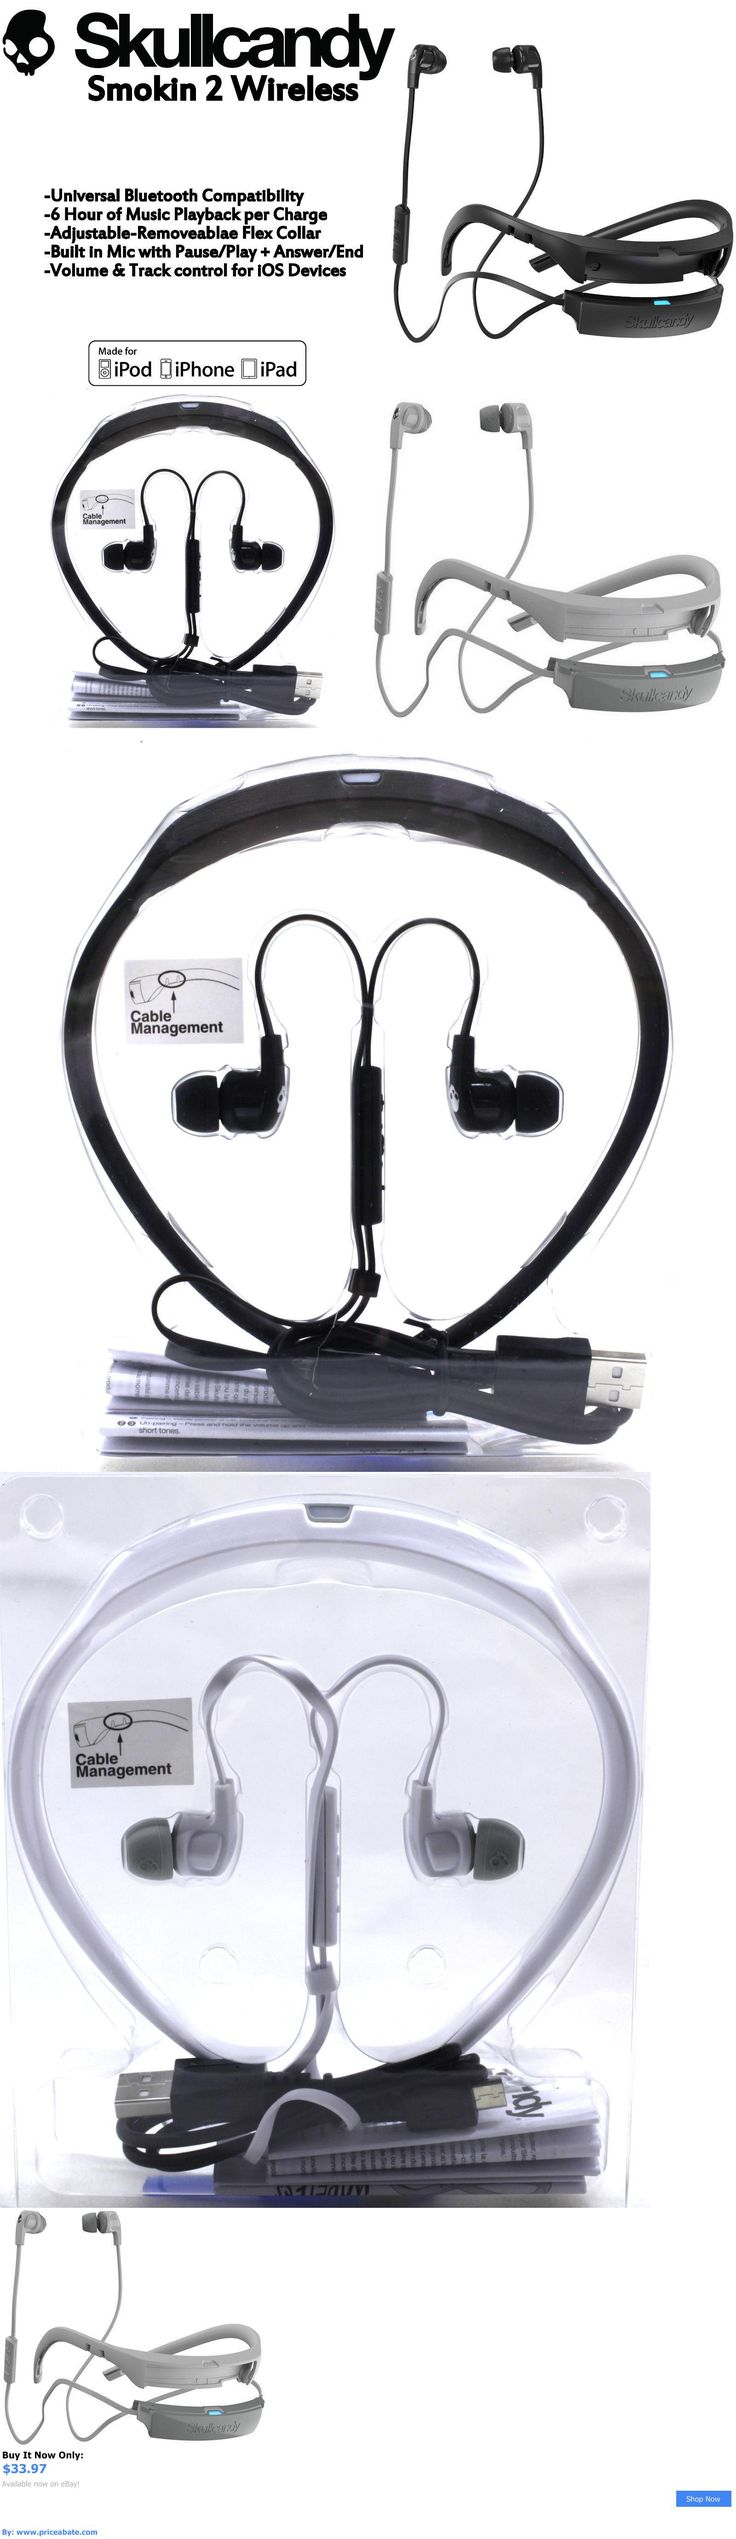 electronics: New Skullcandy Smokin Buds 2 Wireless Bluetooth Earphones With Mic Black White BUY IT NOW ONLY: $33.97 #priceabateelectronics OR #priceabate